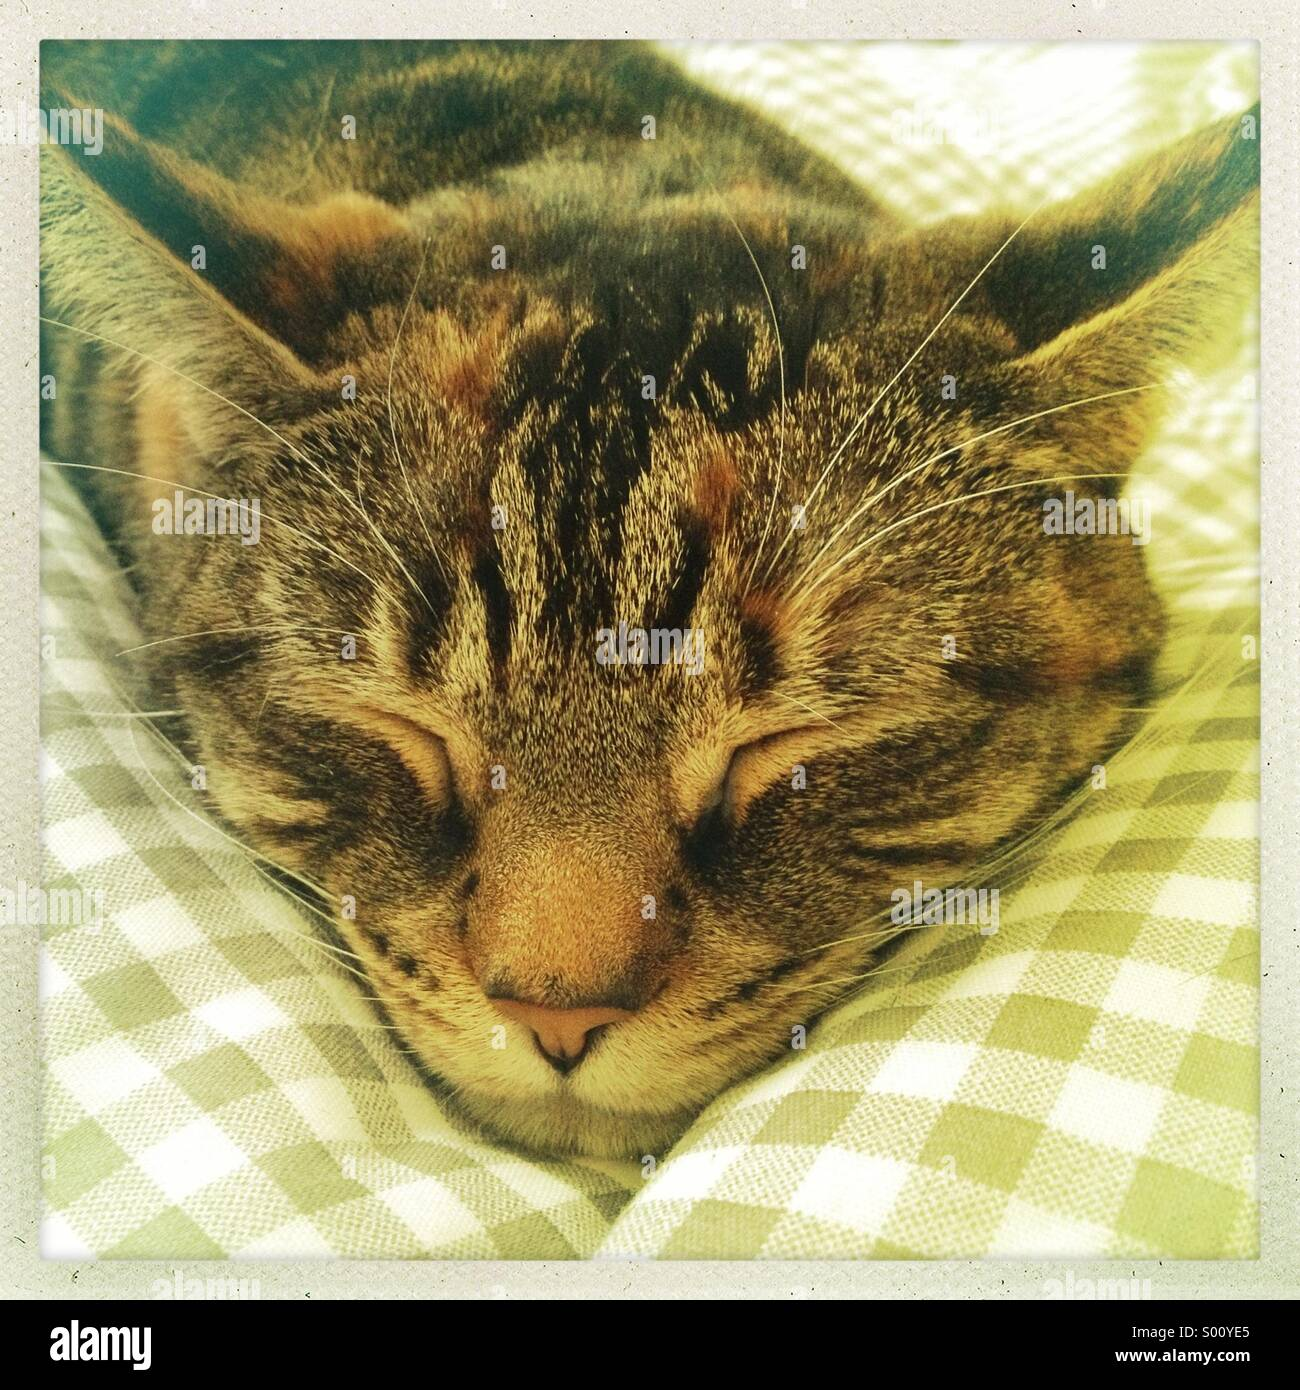 Sleeping tabby cat - Stock Image